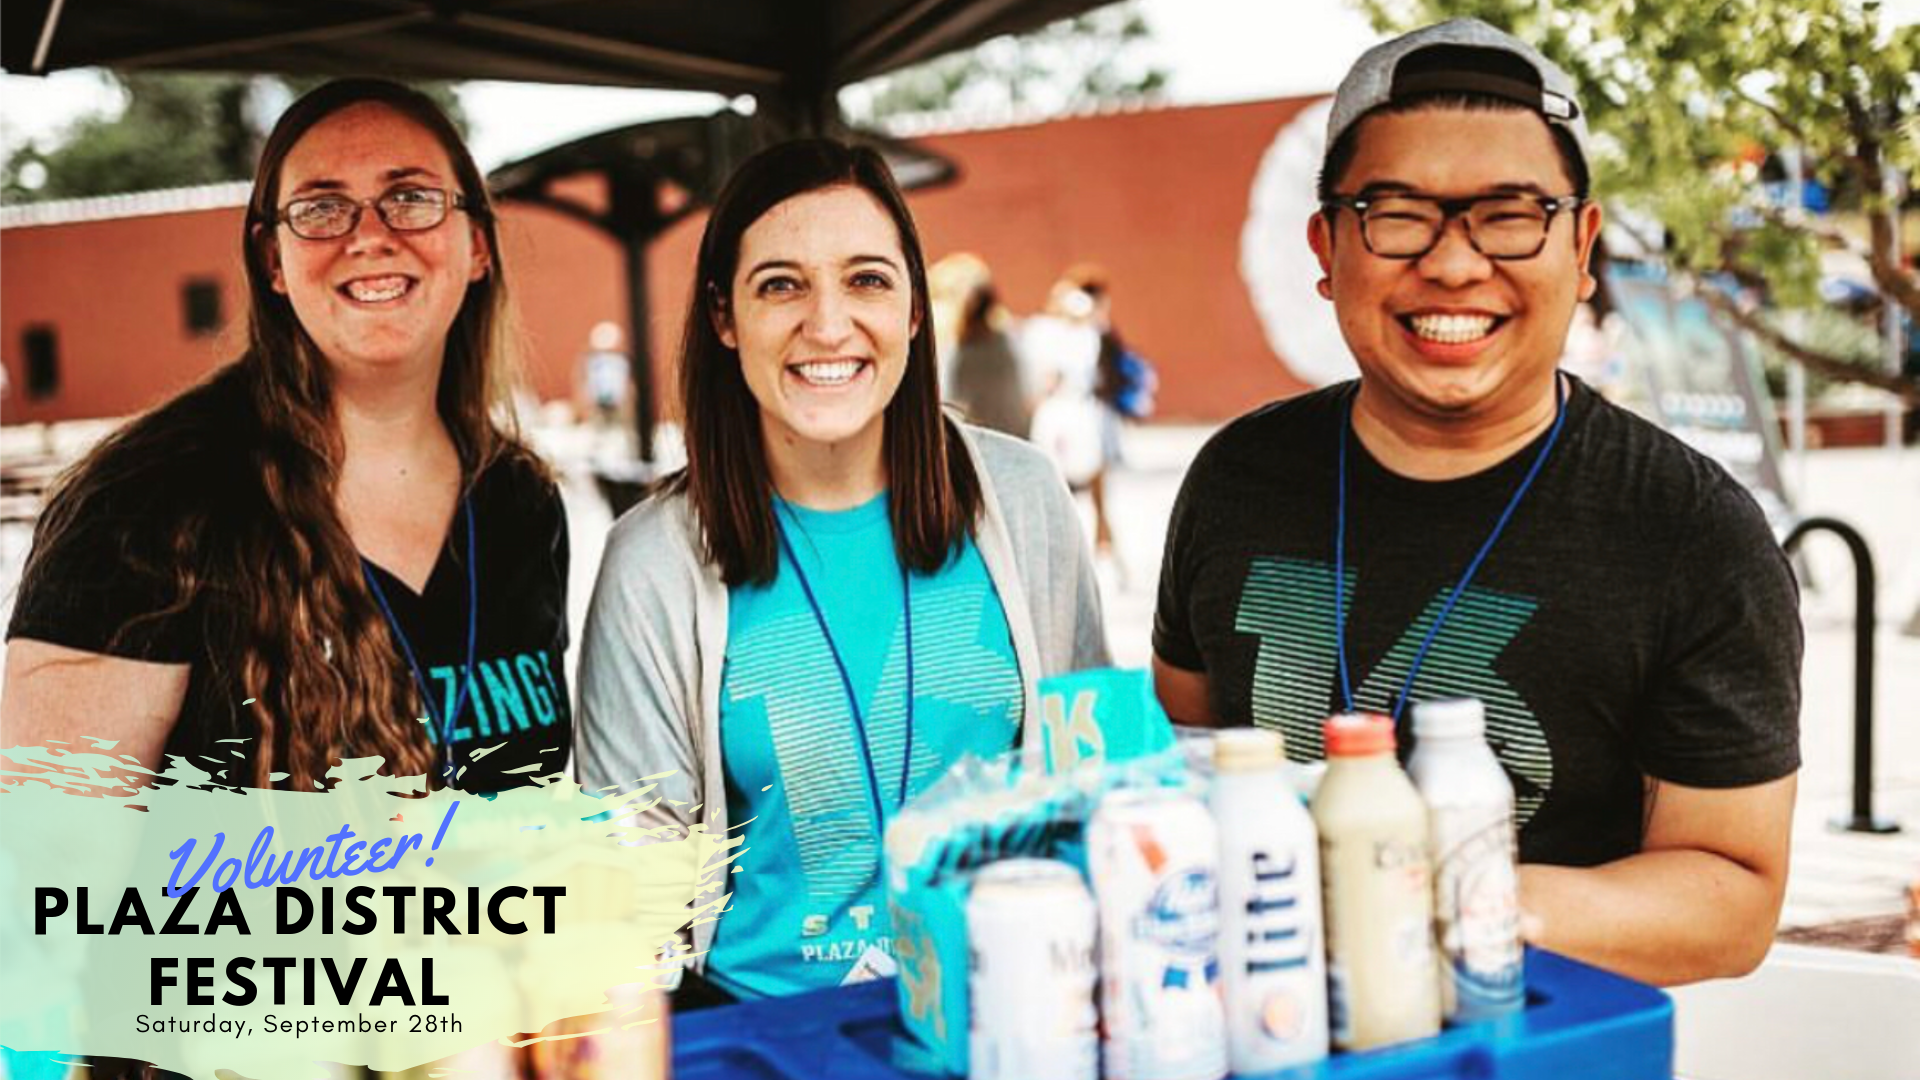 Volunteer at Plaza District Festival! - The Annual Plaza District festival could not happen each year without the support of the surrounding community through volunteering and we'd love for you to join the team. See the full list of volunteering opportunities by following the link below!We are still looking for some awesome volunteers to help out with Plaza District Festival, on Saturday, September 28th!